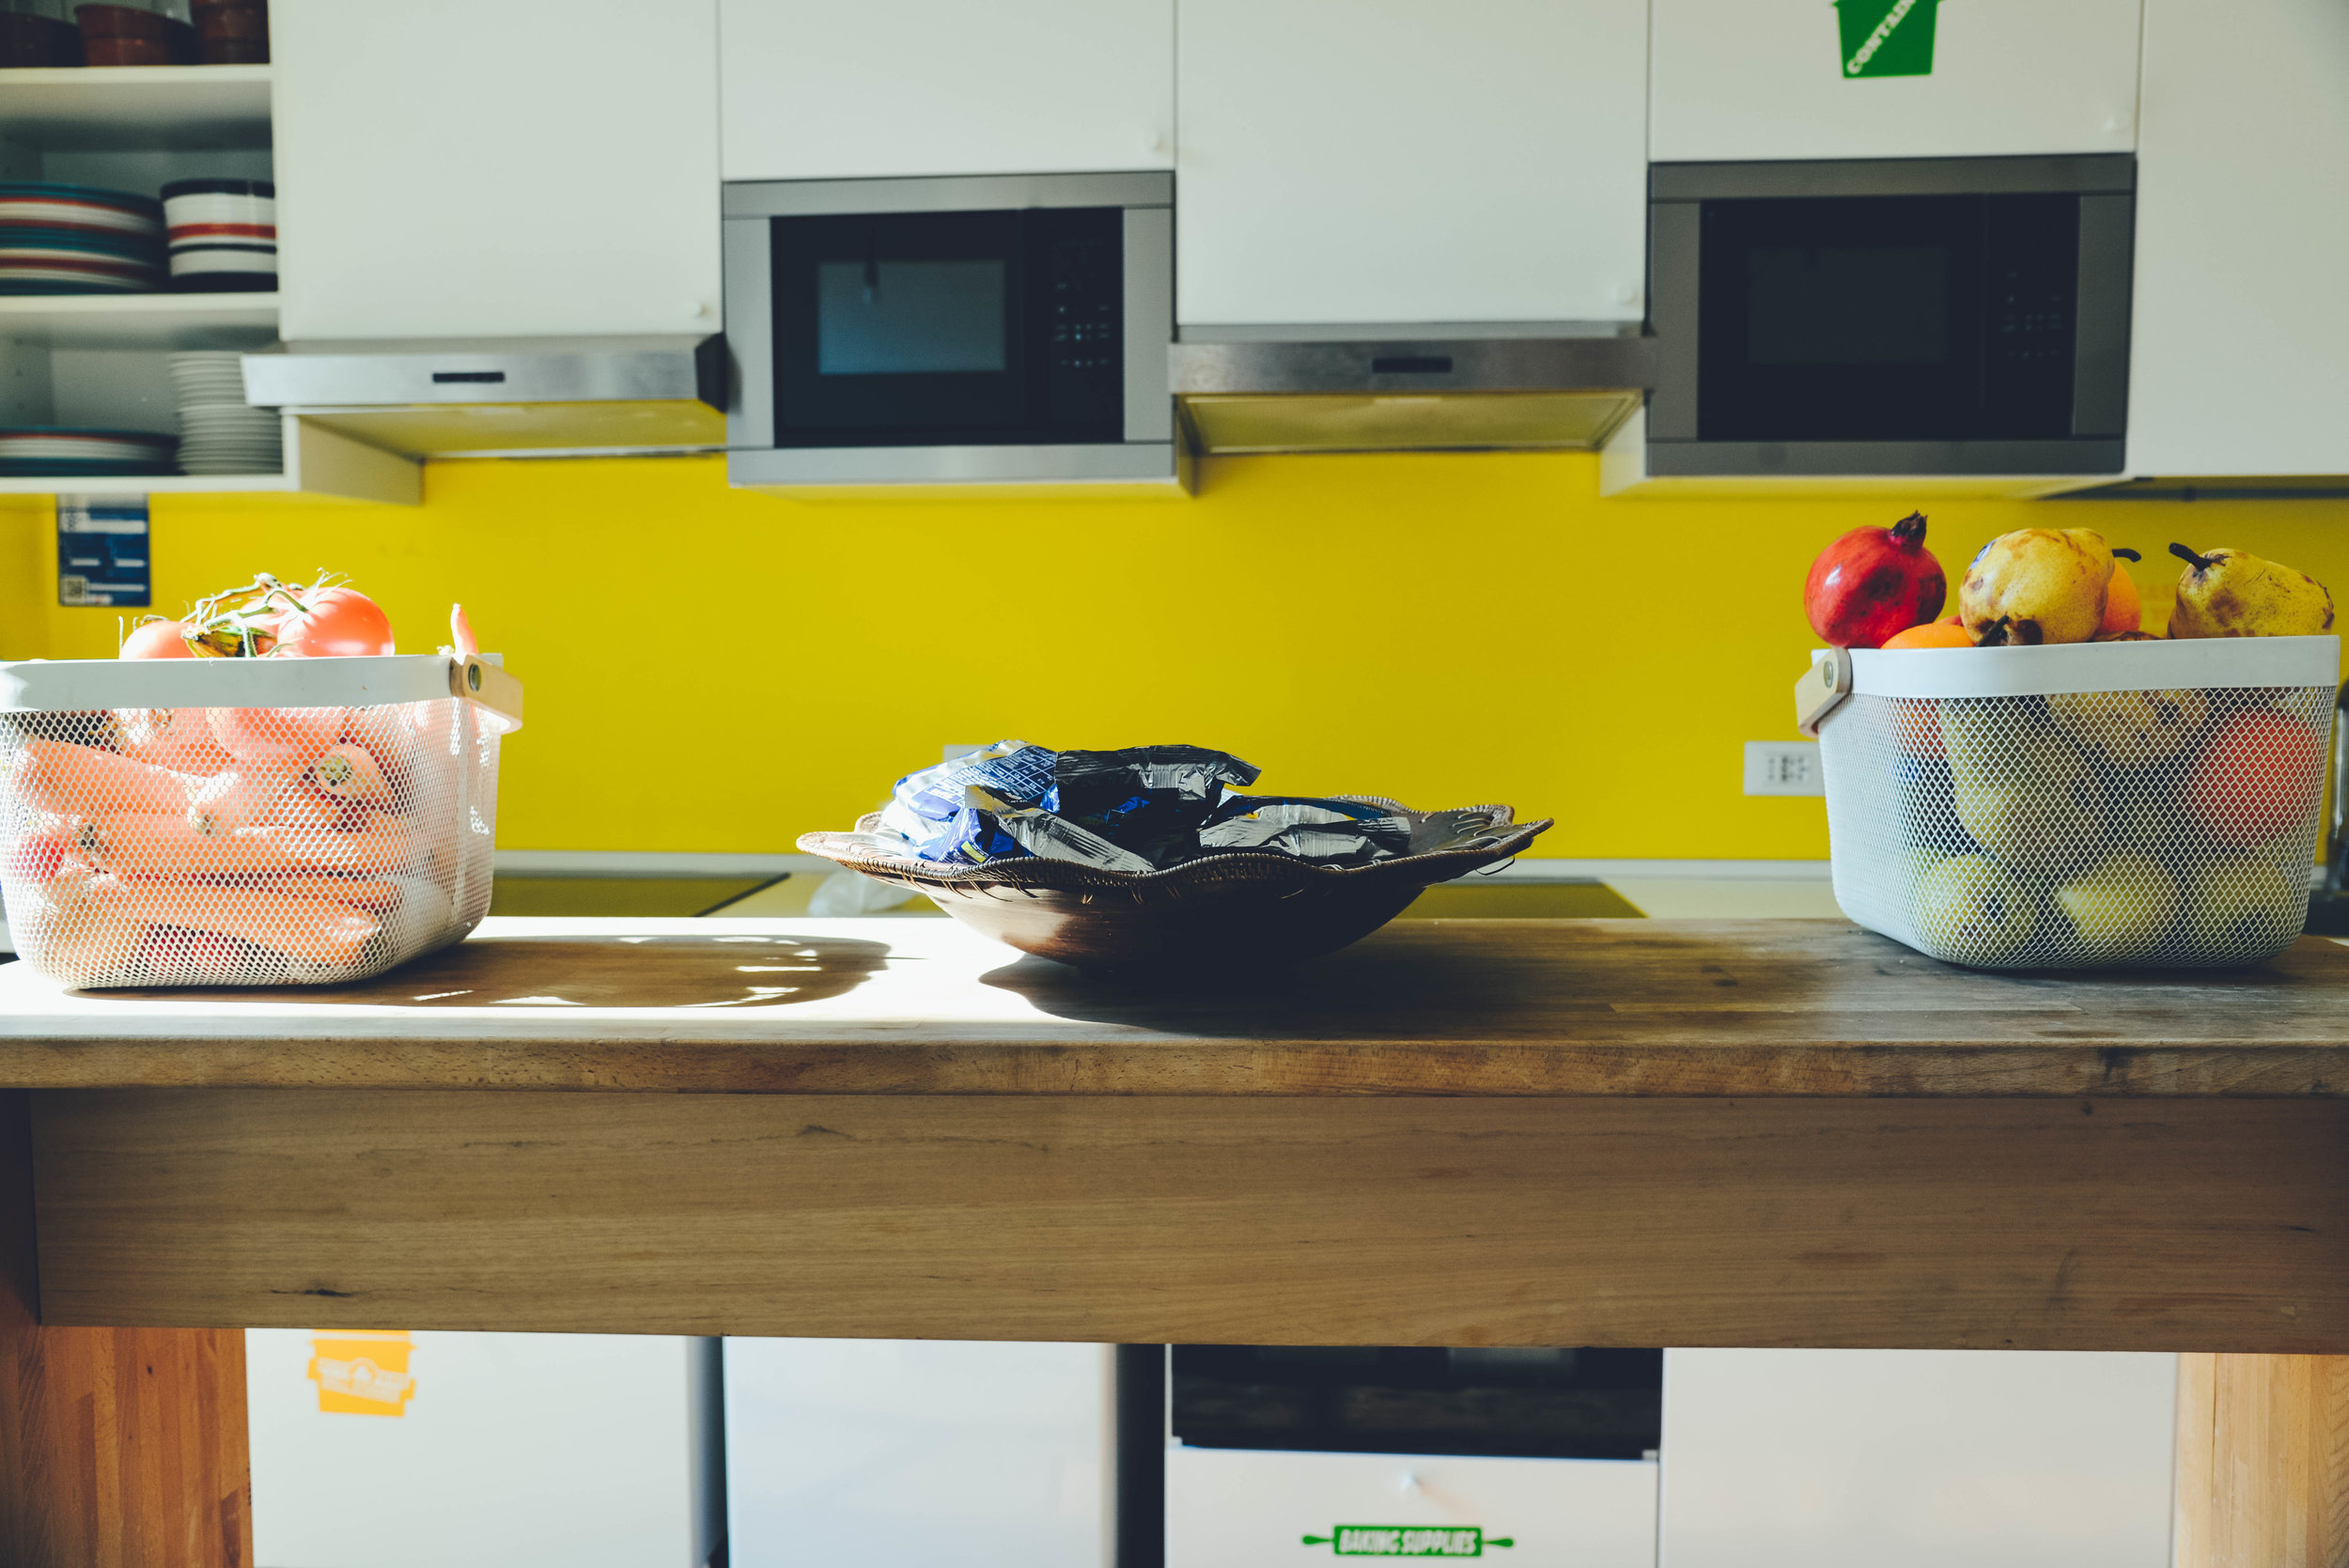 The kitchen in Ostello Bello Hostel in Lake Como is constantly stocked with snacks galore.